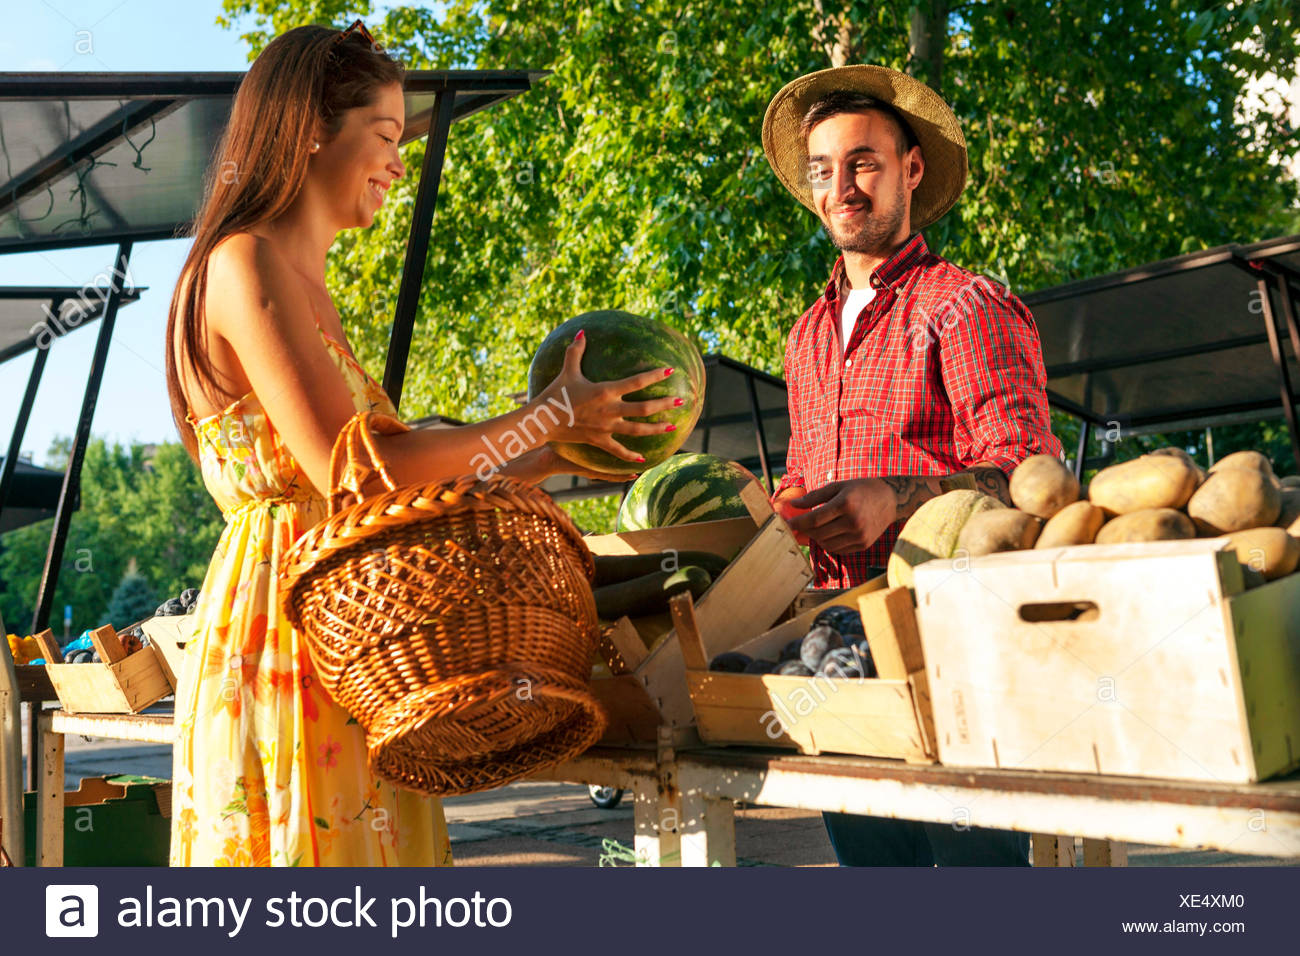 Young man selling fruit and vegetables at market stall - Stock Image